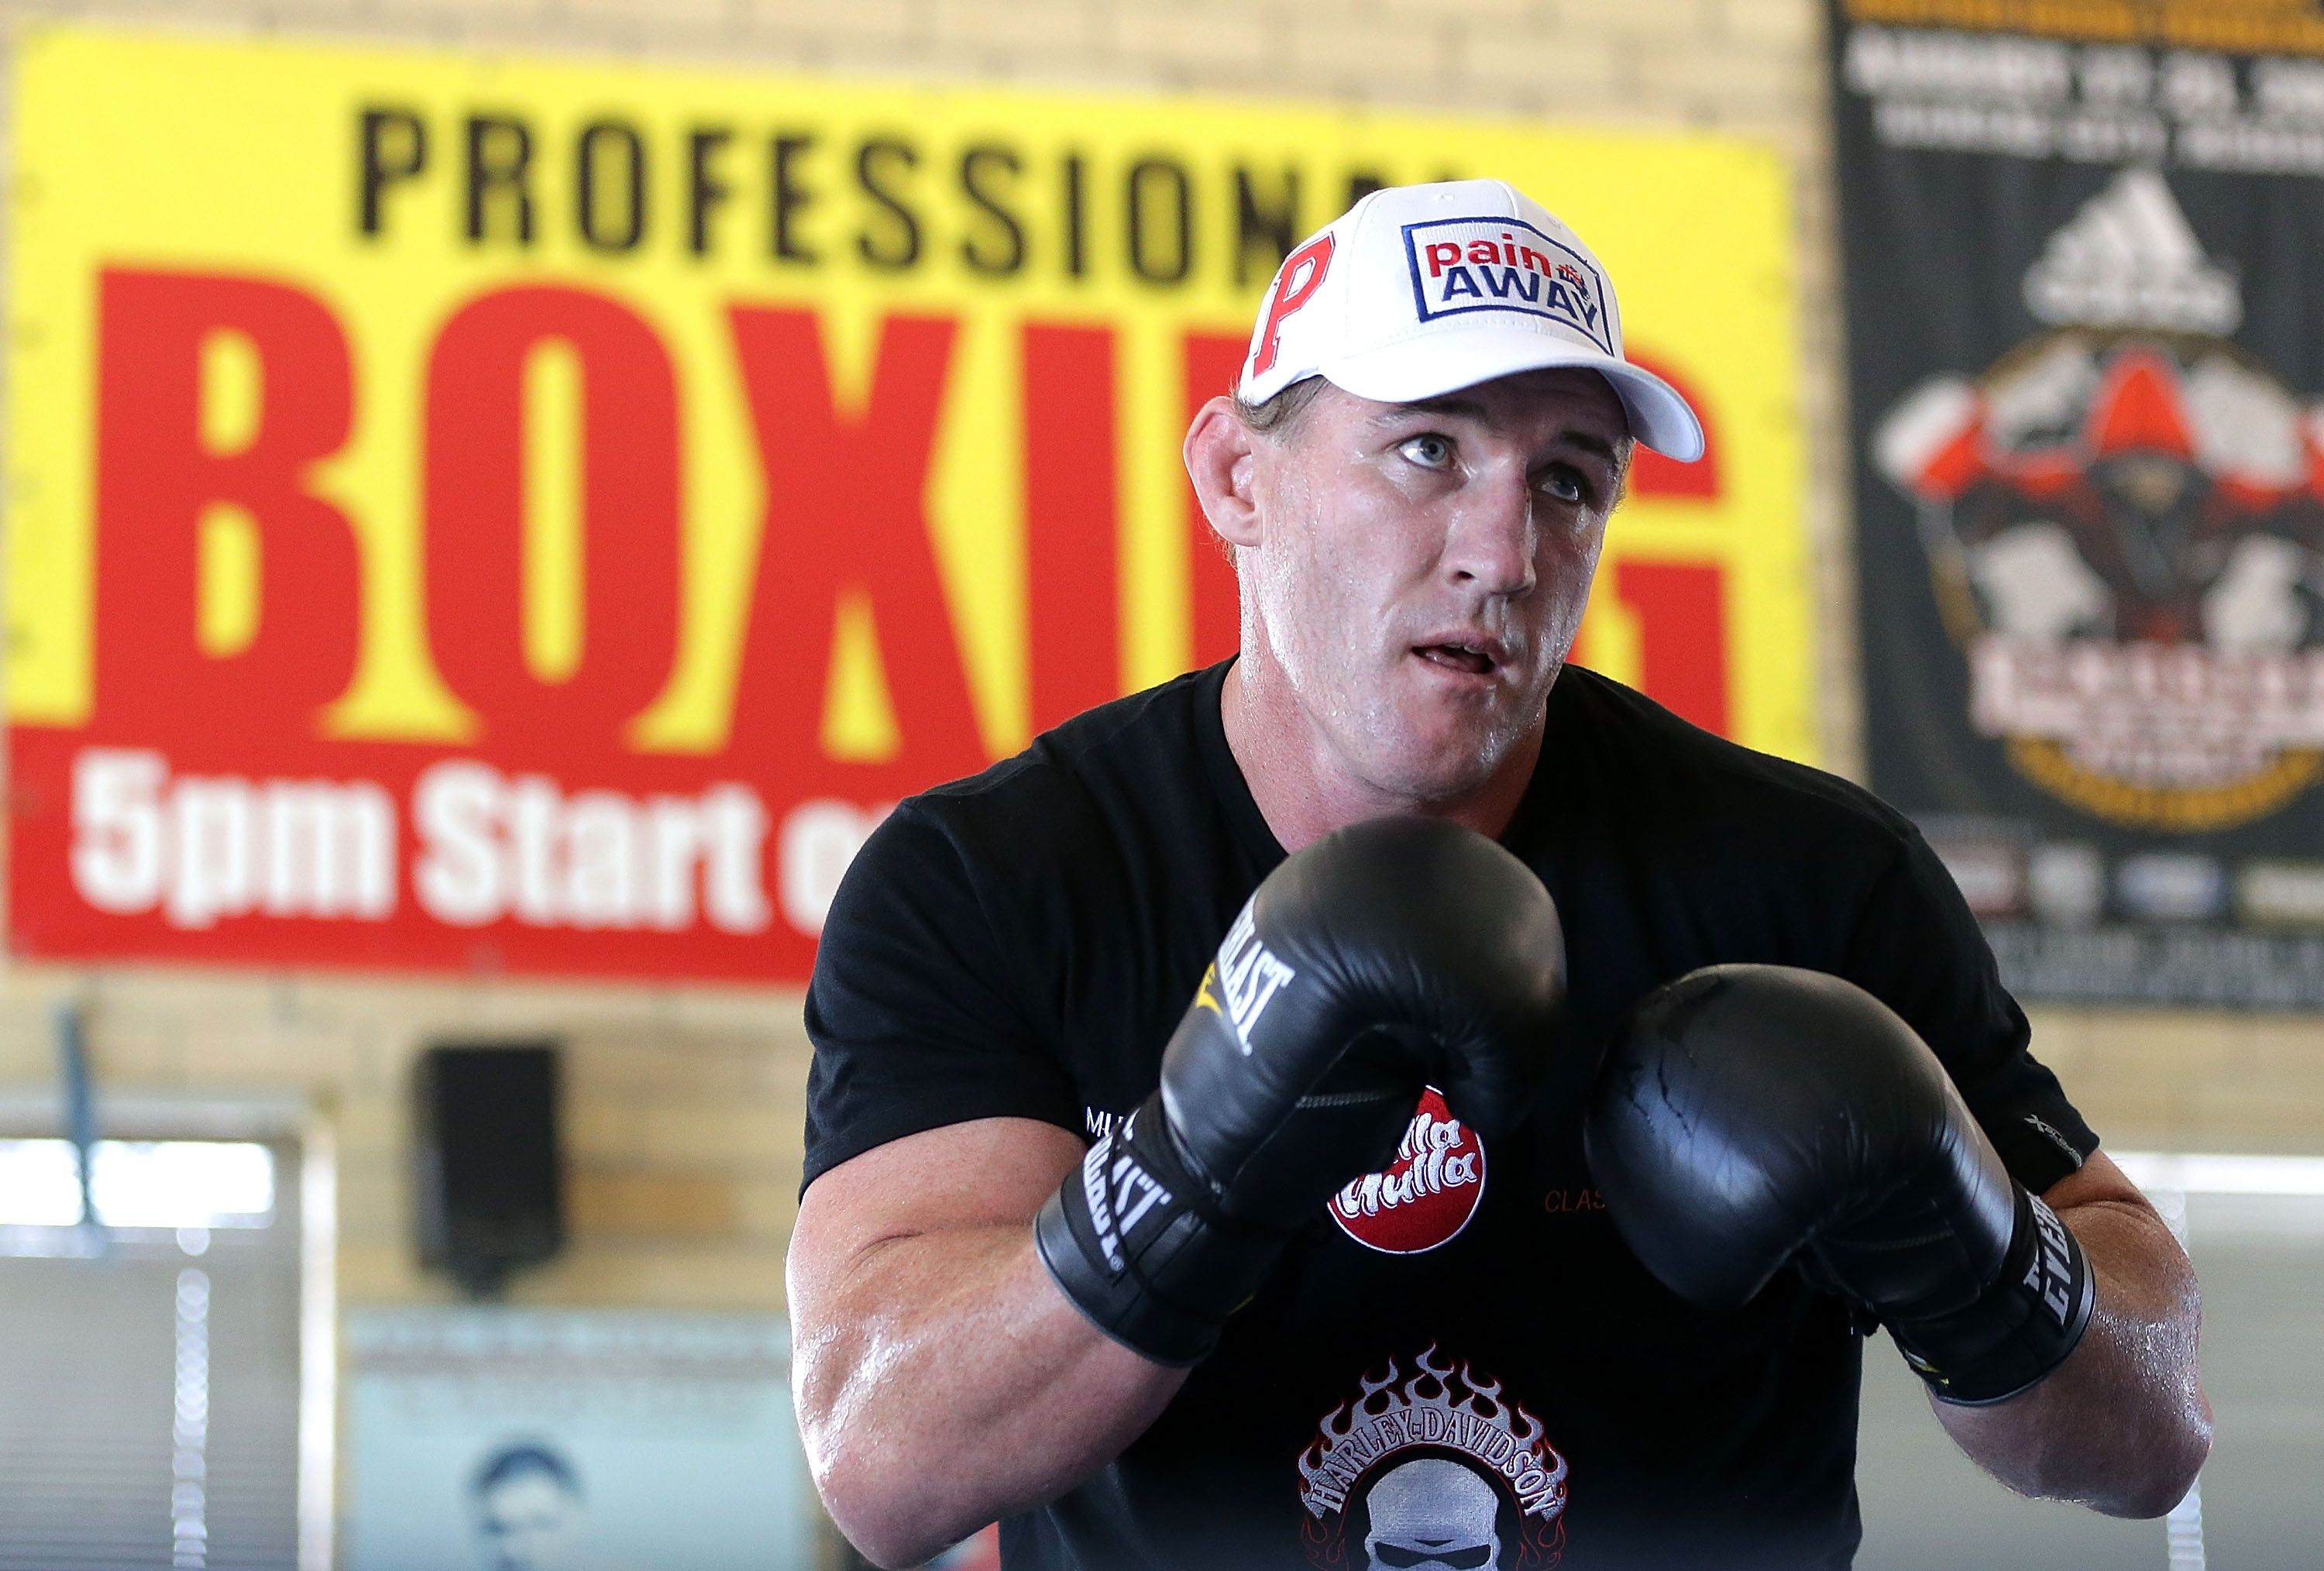 Paul Gallen at Kostya Tszyu's Gymnasium.